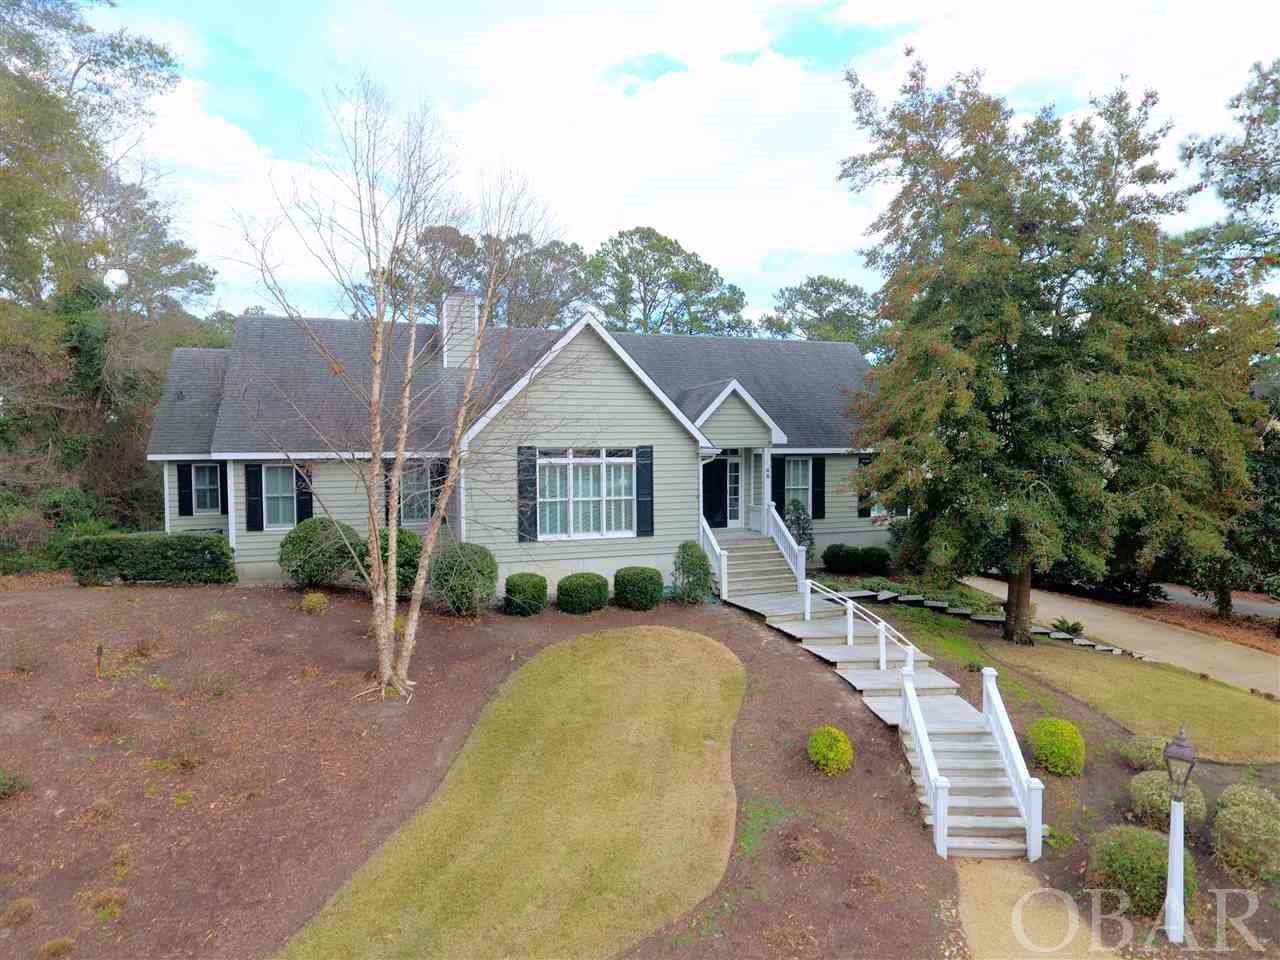 46 Ginguite Trail Lot 82A, Southern Shores, NC 27949